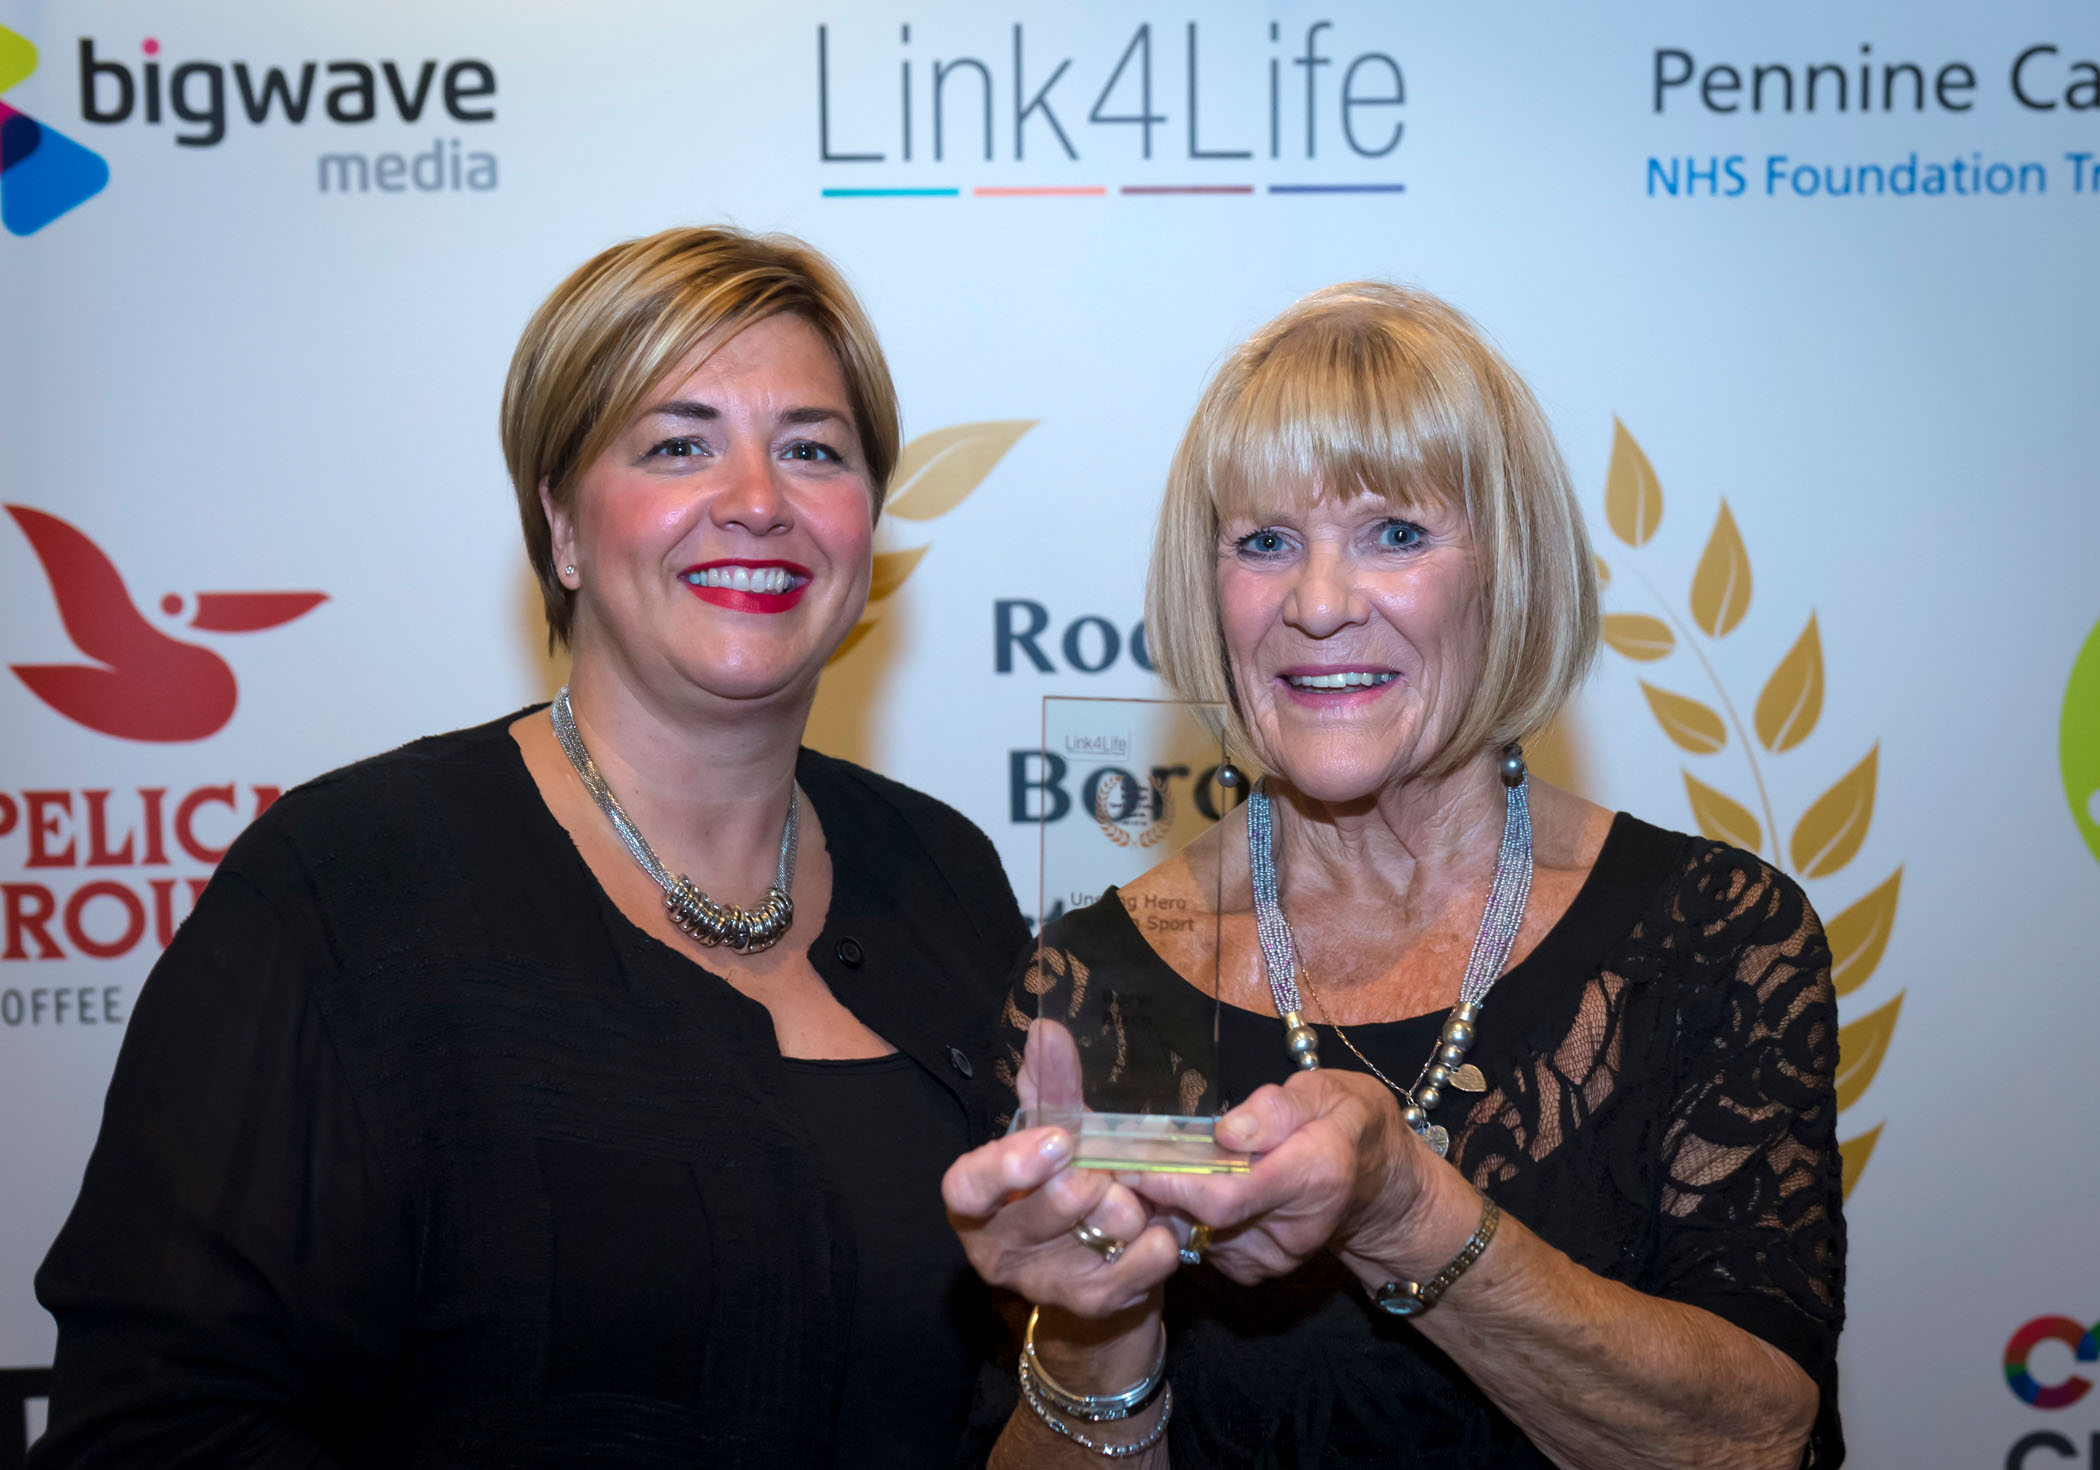 Gillian Bishop (Link4Life Chief Executive) with Beryl Birch at the Awards night.